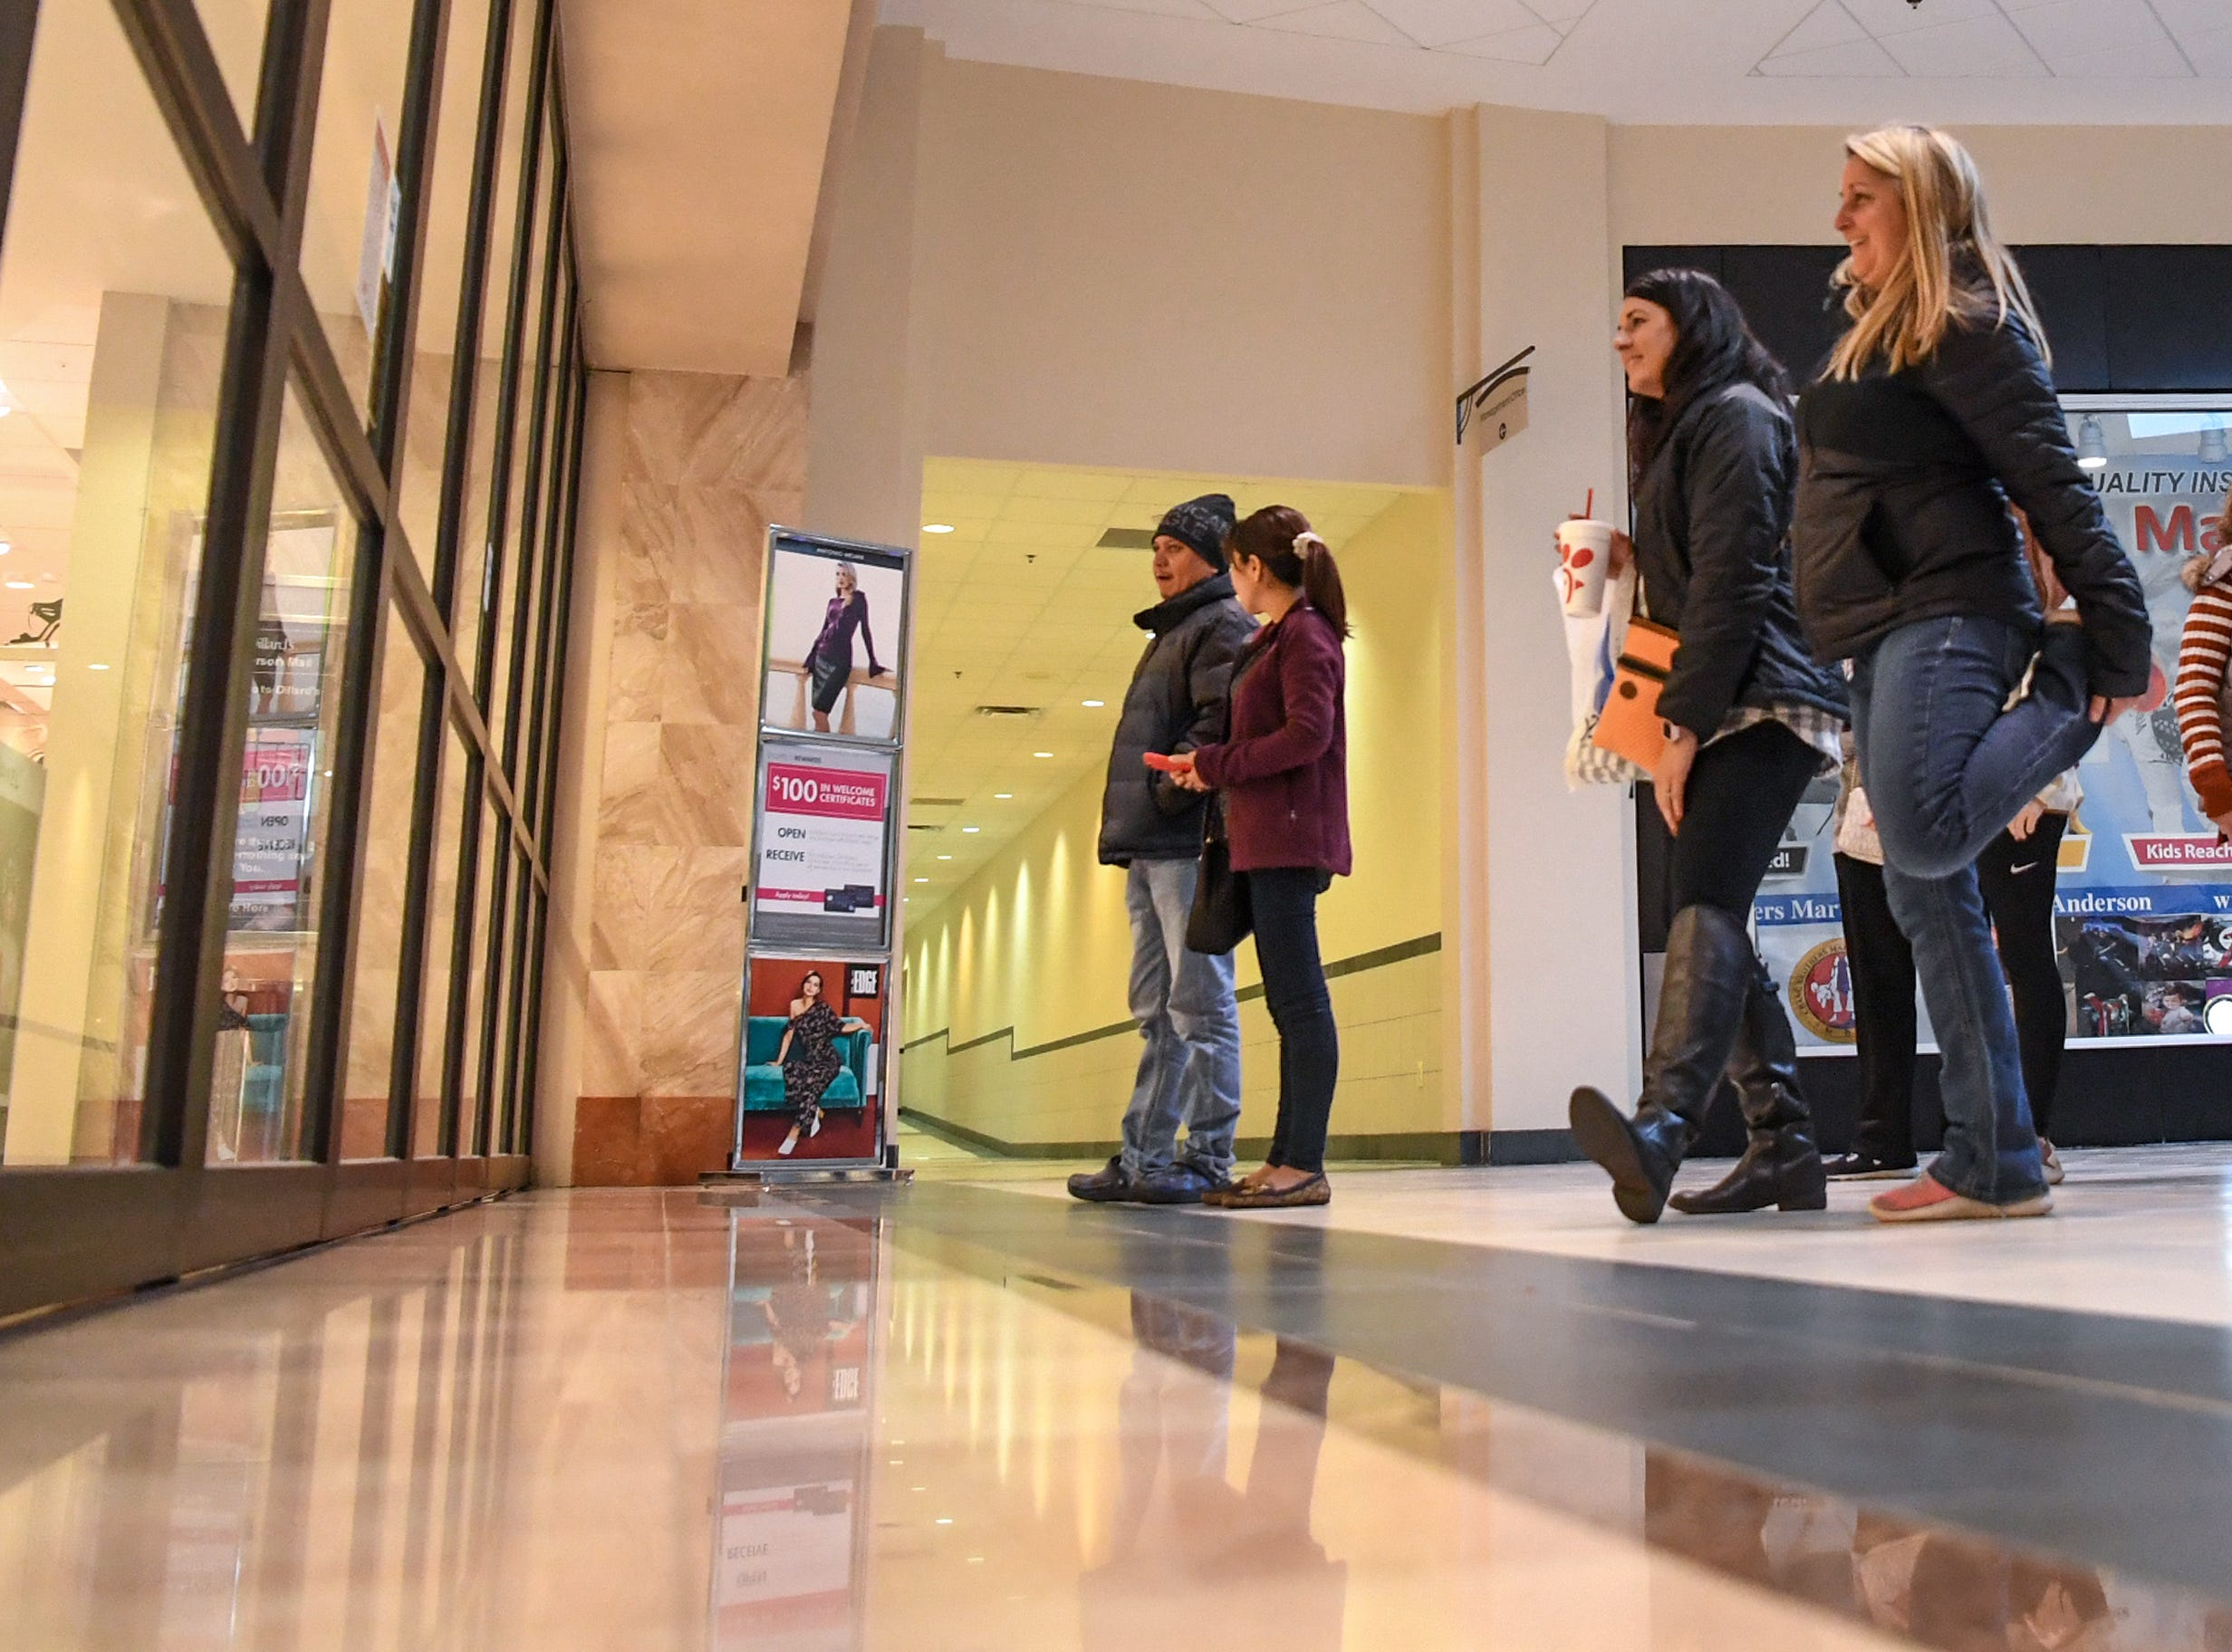 Jennifer Crosby, left, and Jennifer Hanvey get ready to go in Dillard's during Black Friday at the Anderson Mall in Anderson on Friday, November 23, 2018.